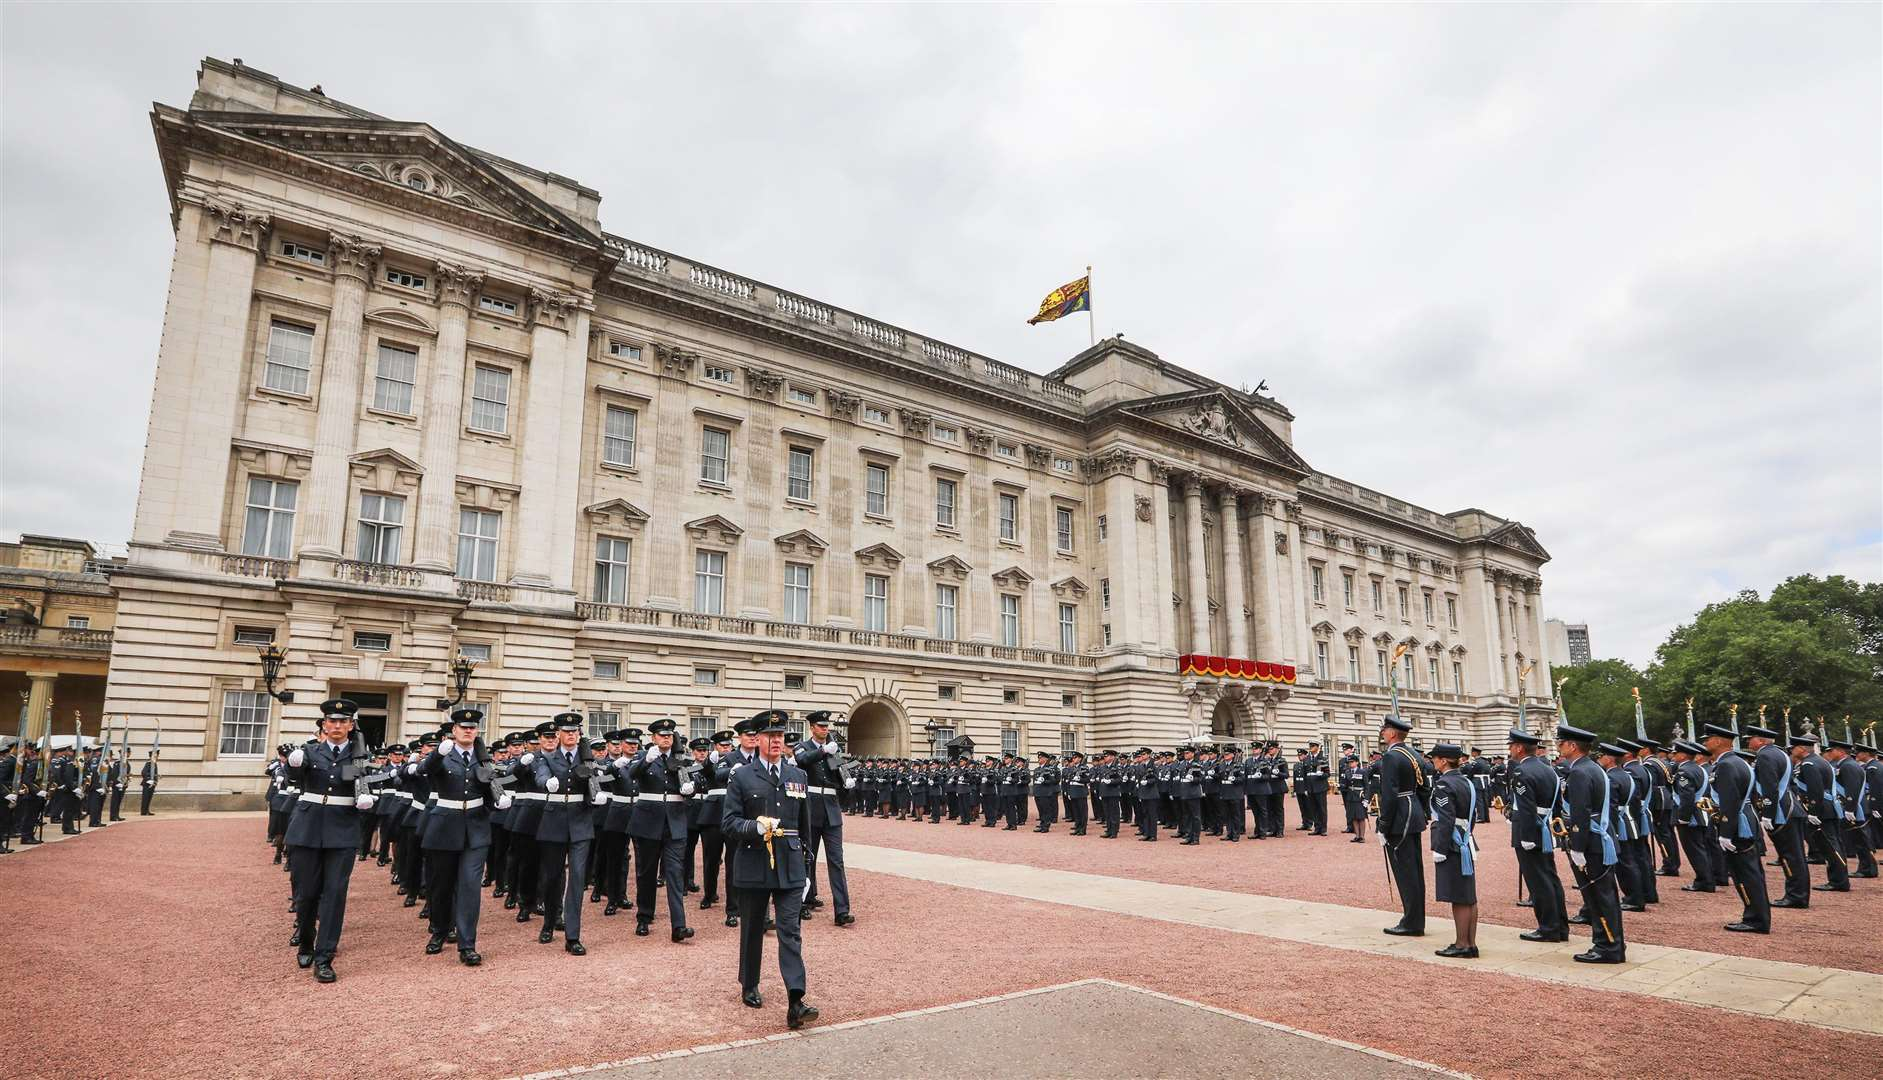 Buckingham Palace is a backdrop for a ceremony to mark 100 years of the RAF. Photo supplied.